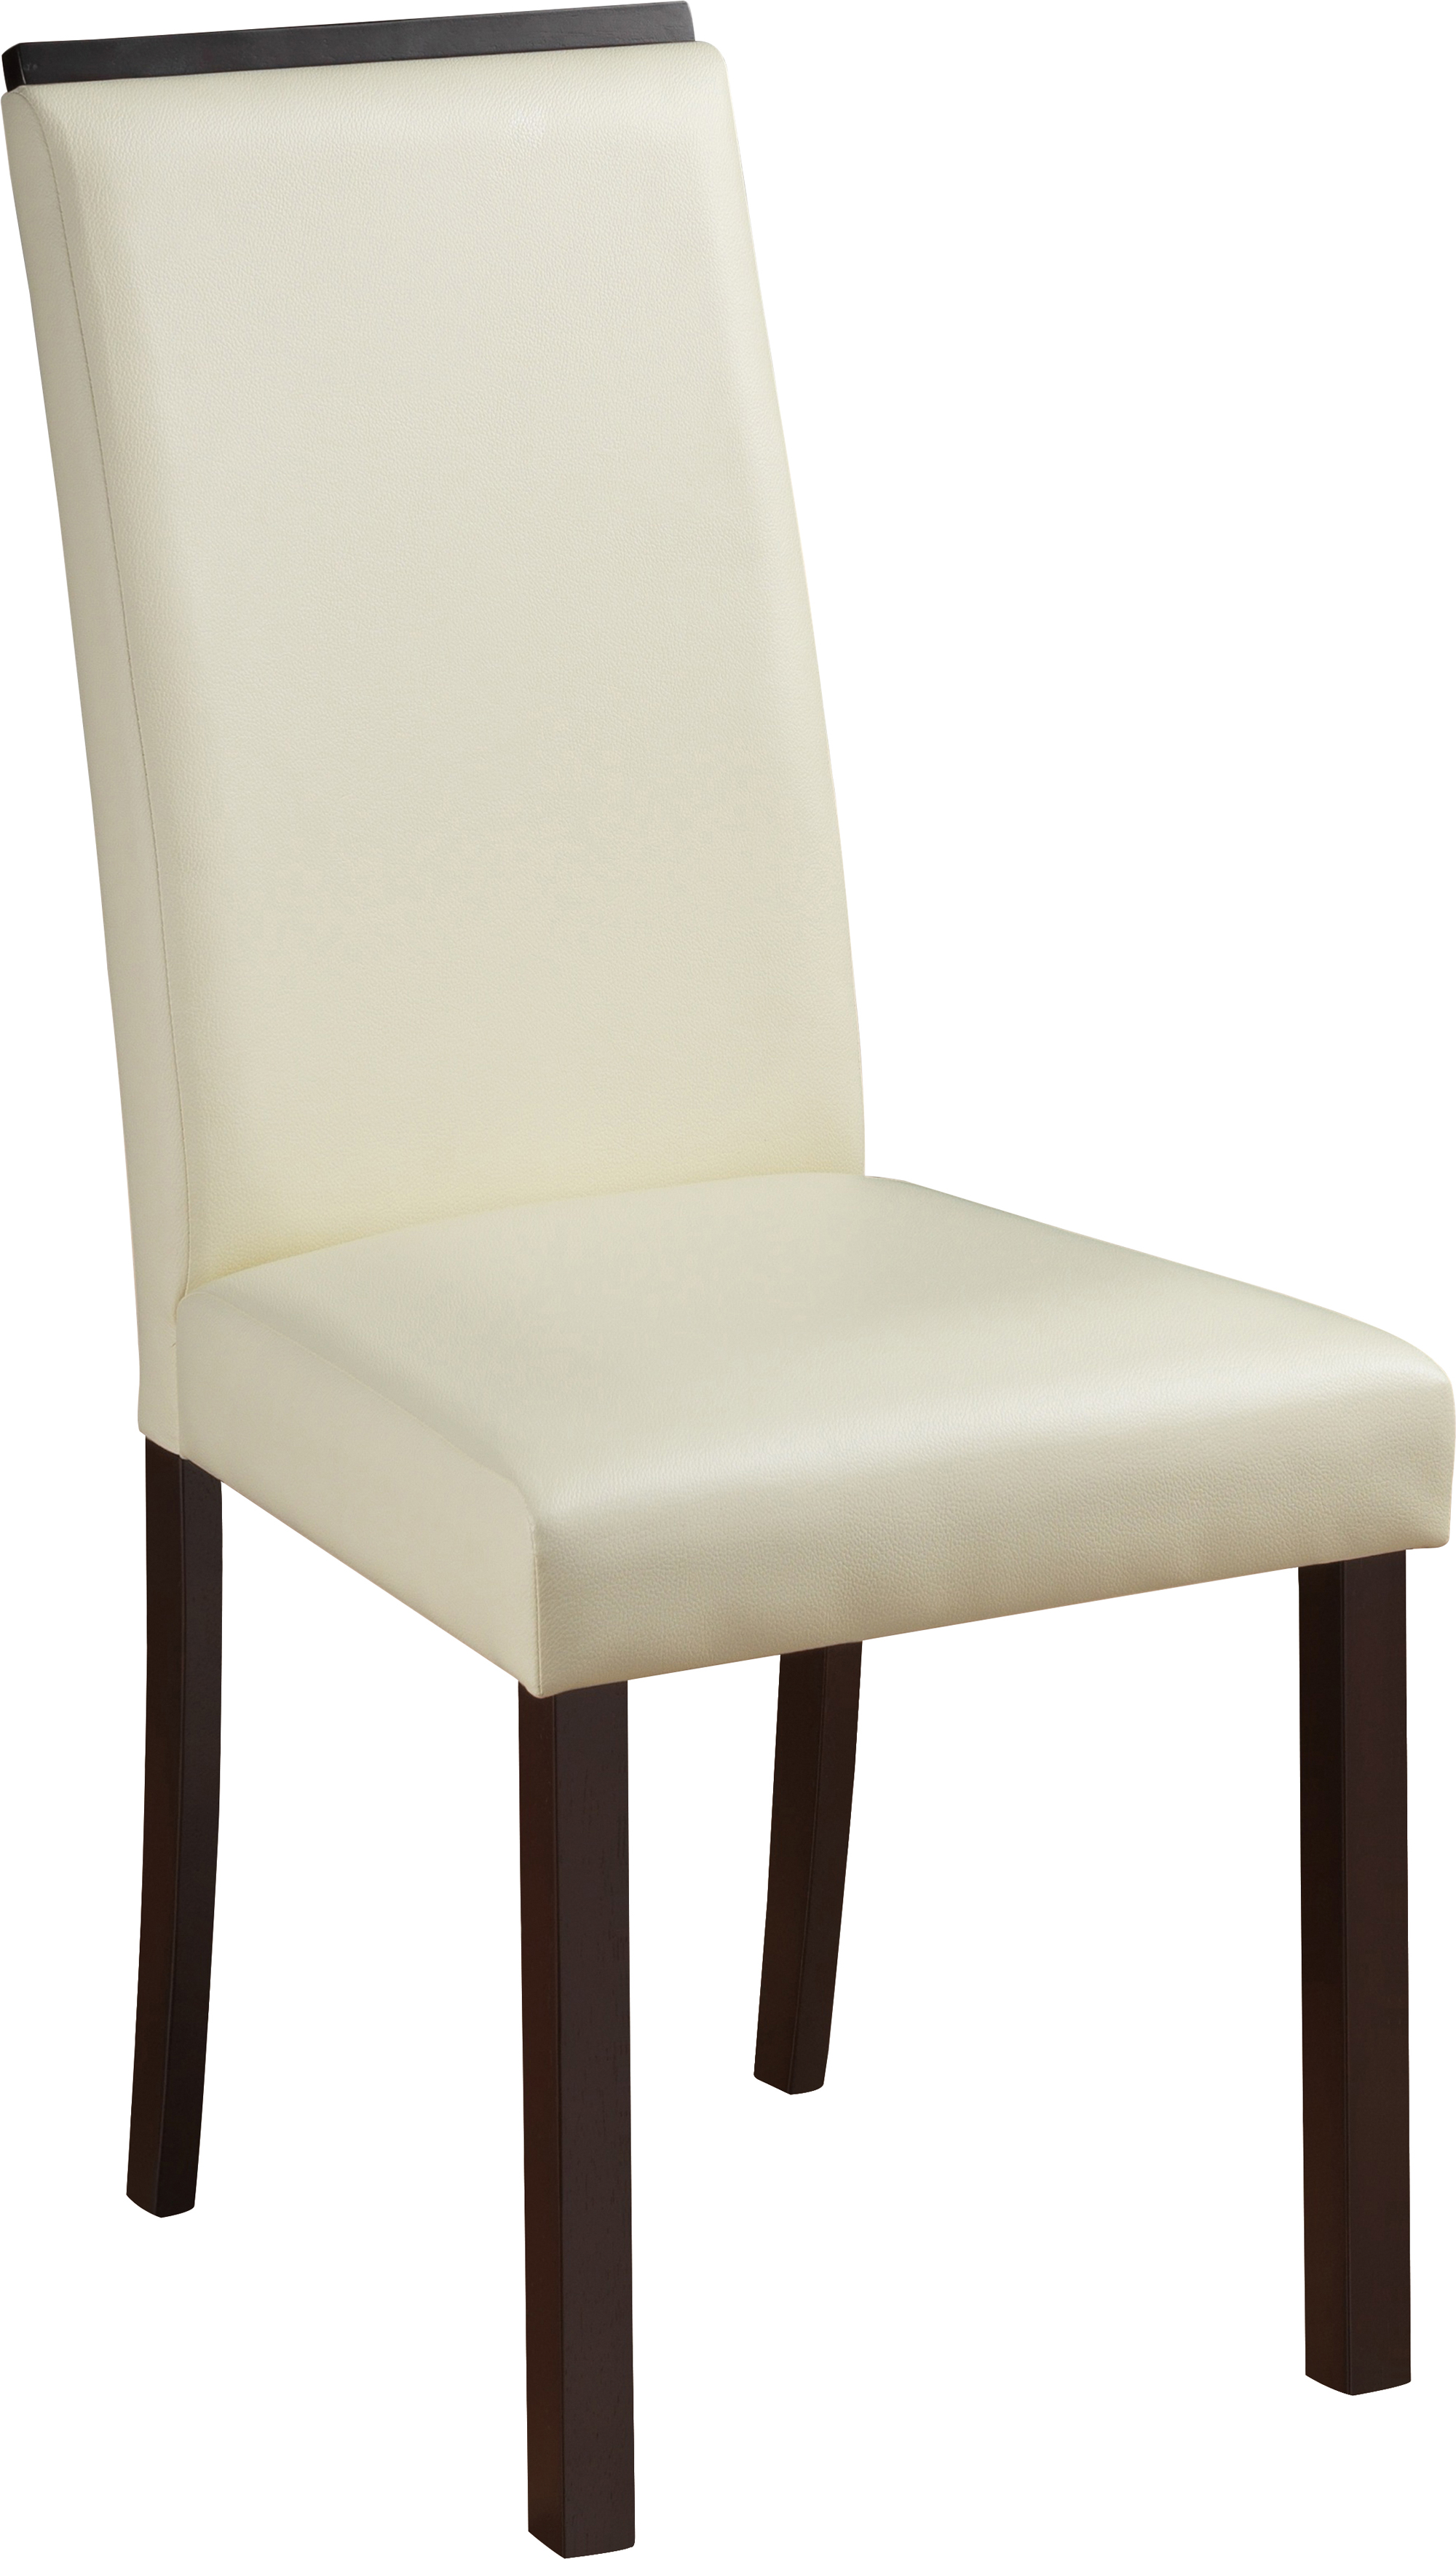 Dining Chair D3048DC Set of 2 Cream PVC by Global  : D3048DC from futonland.com size 2000 x 3515 jpeg 367kB